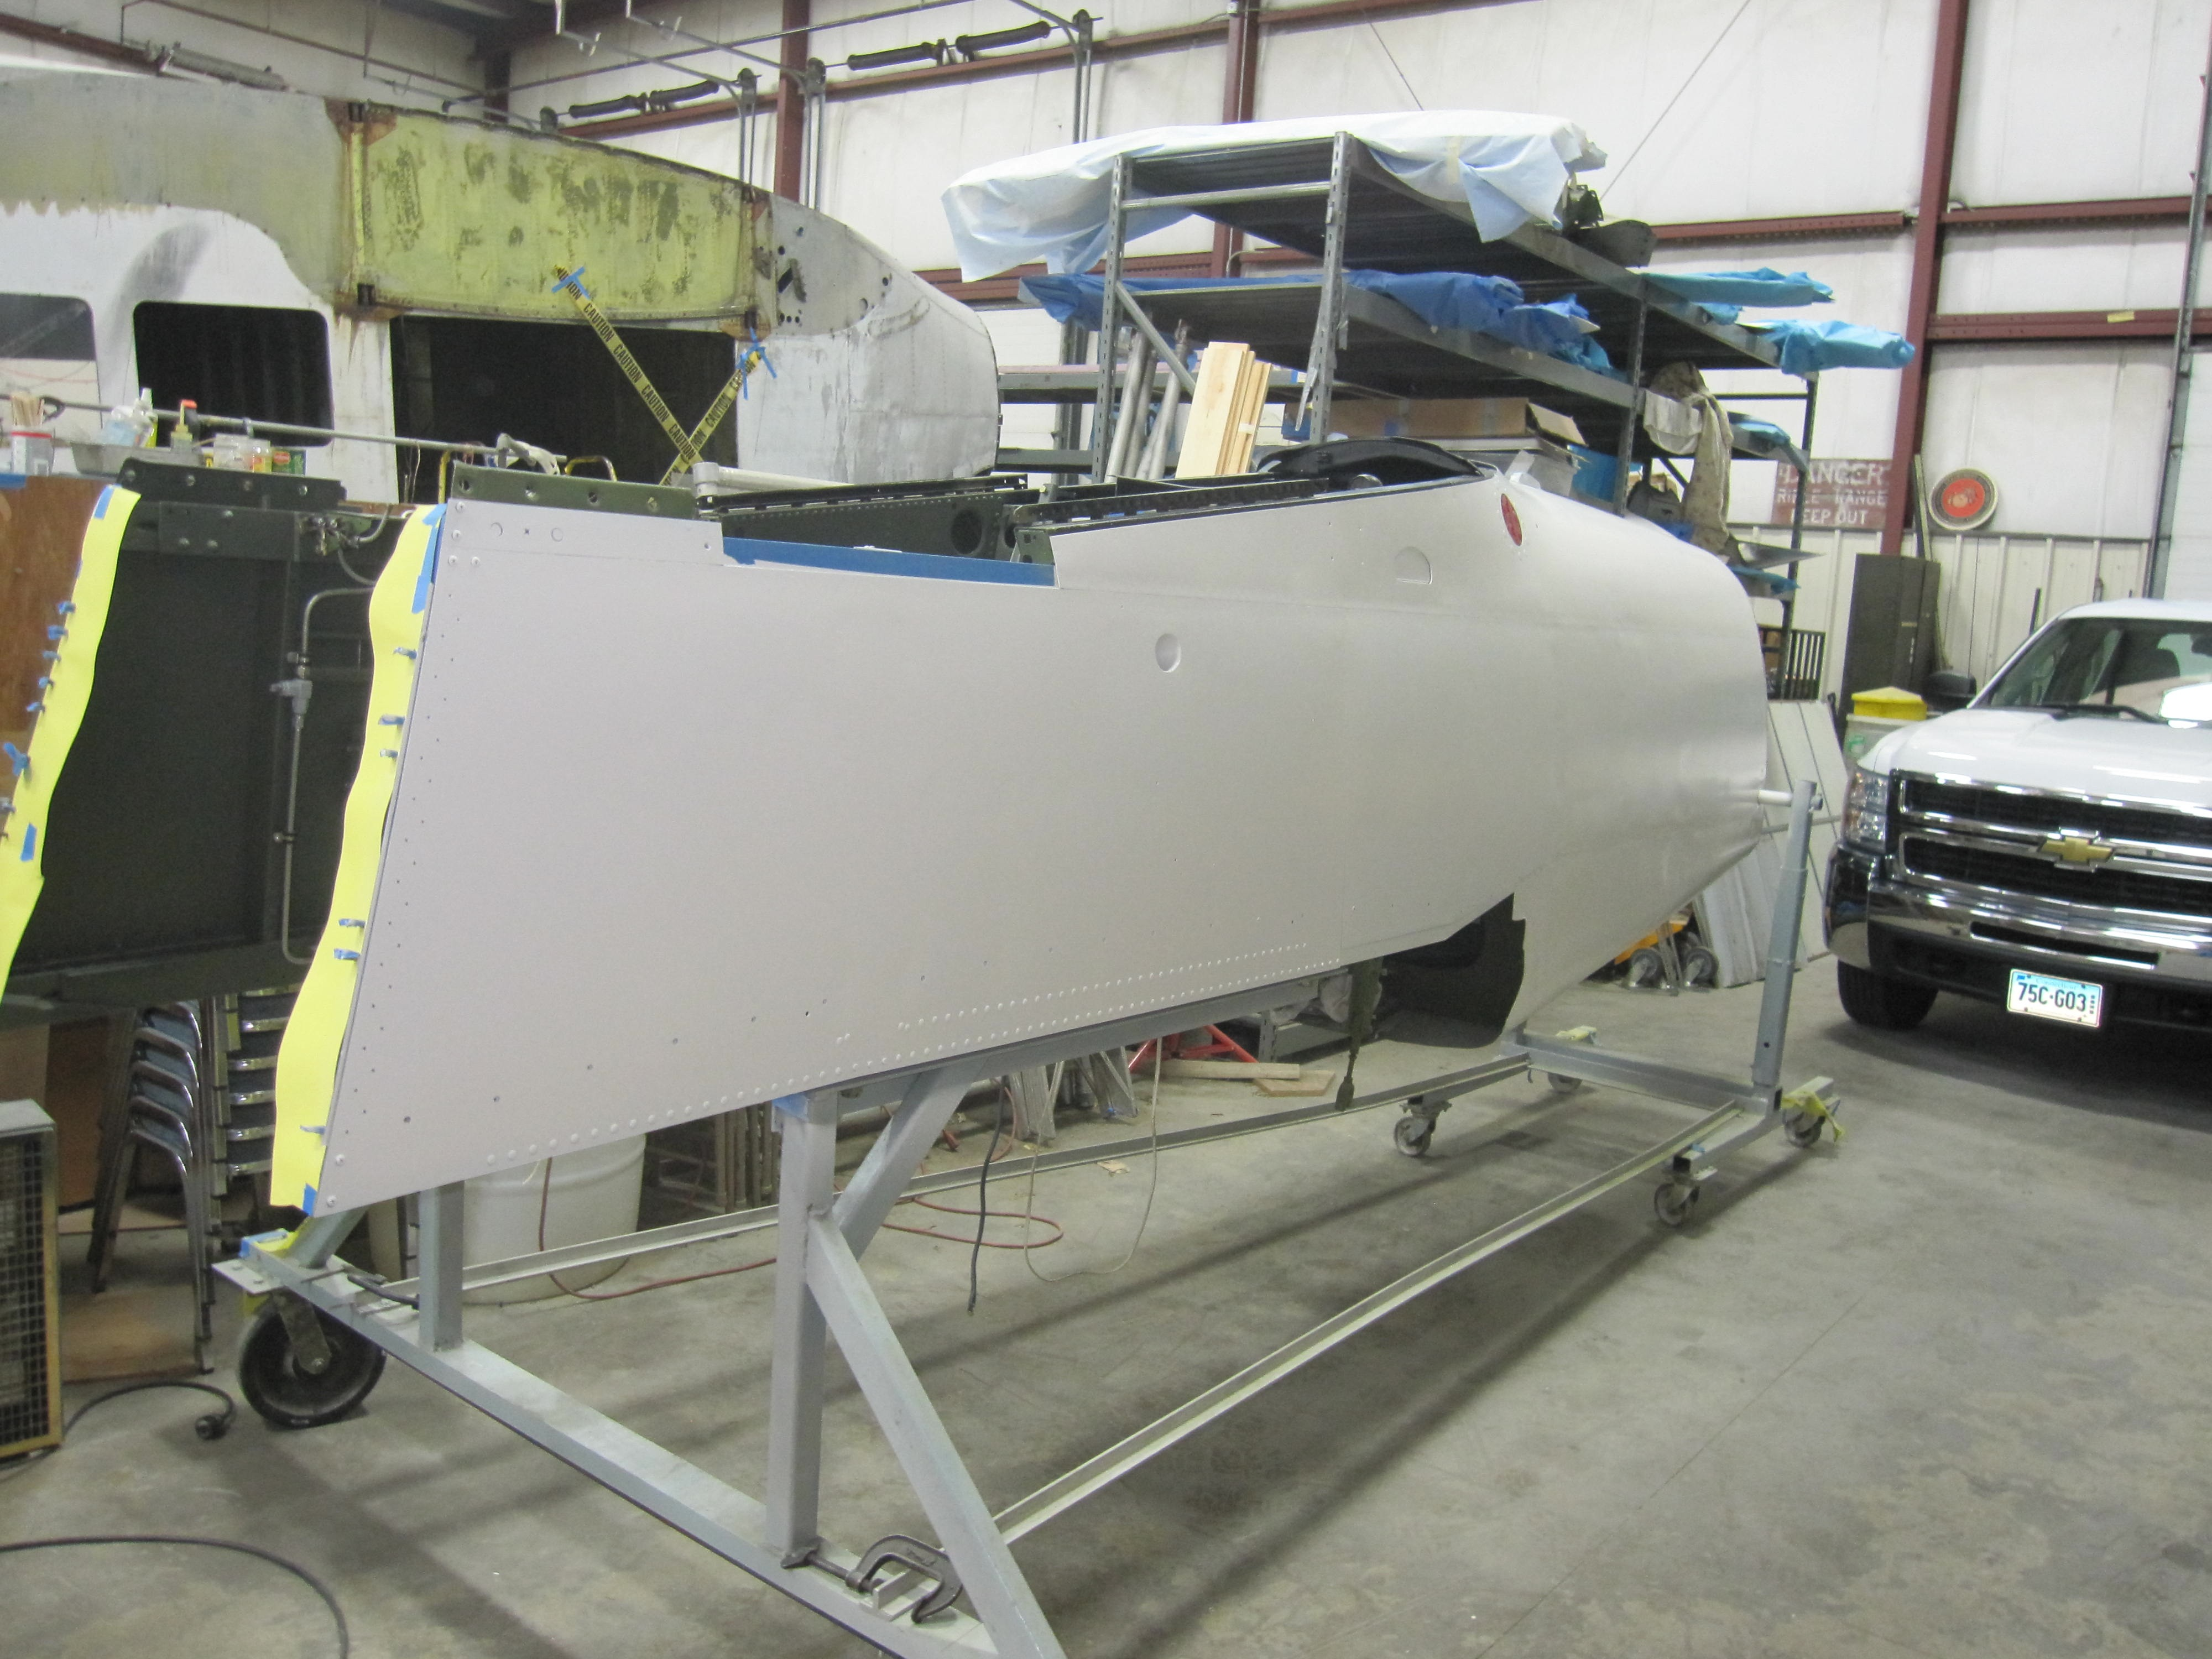 fuselage right side primed